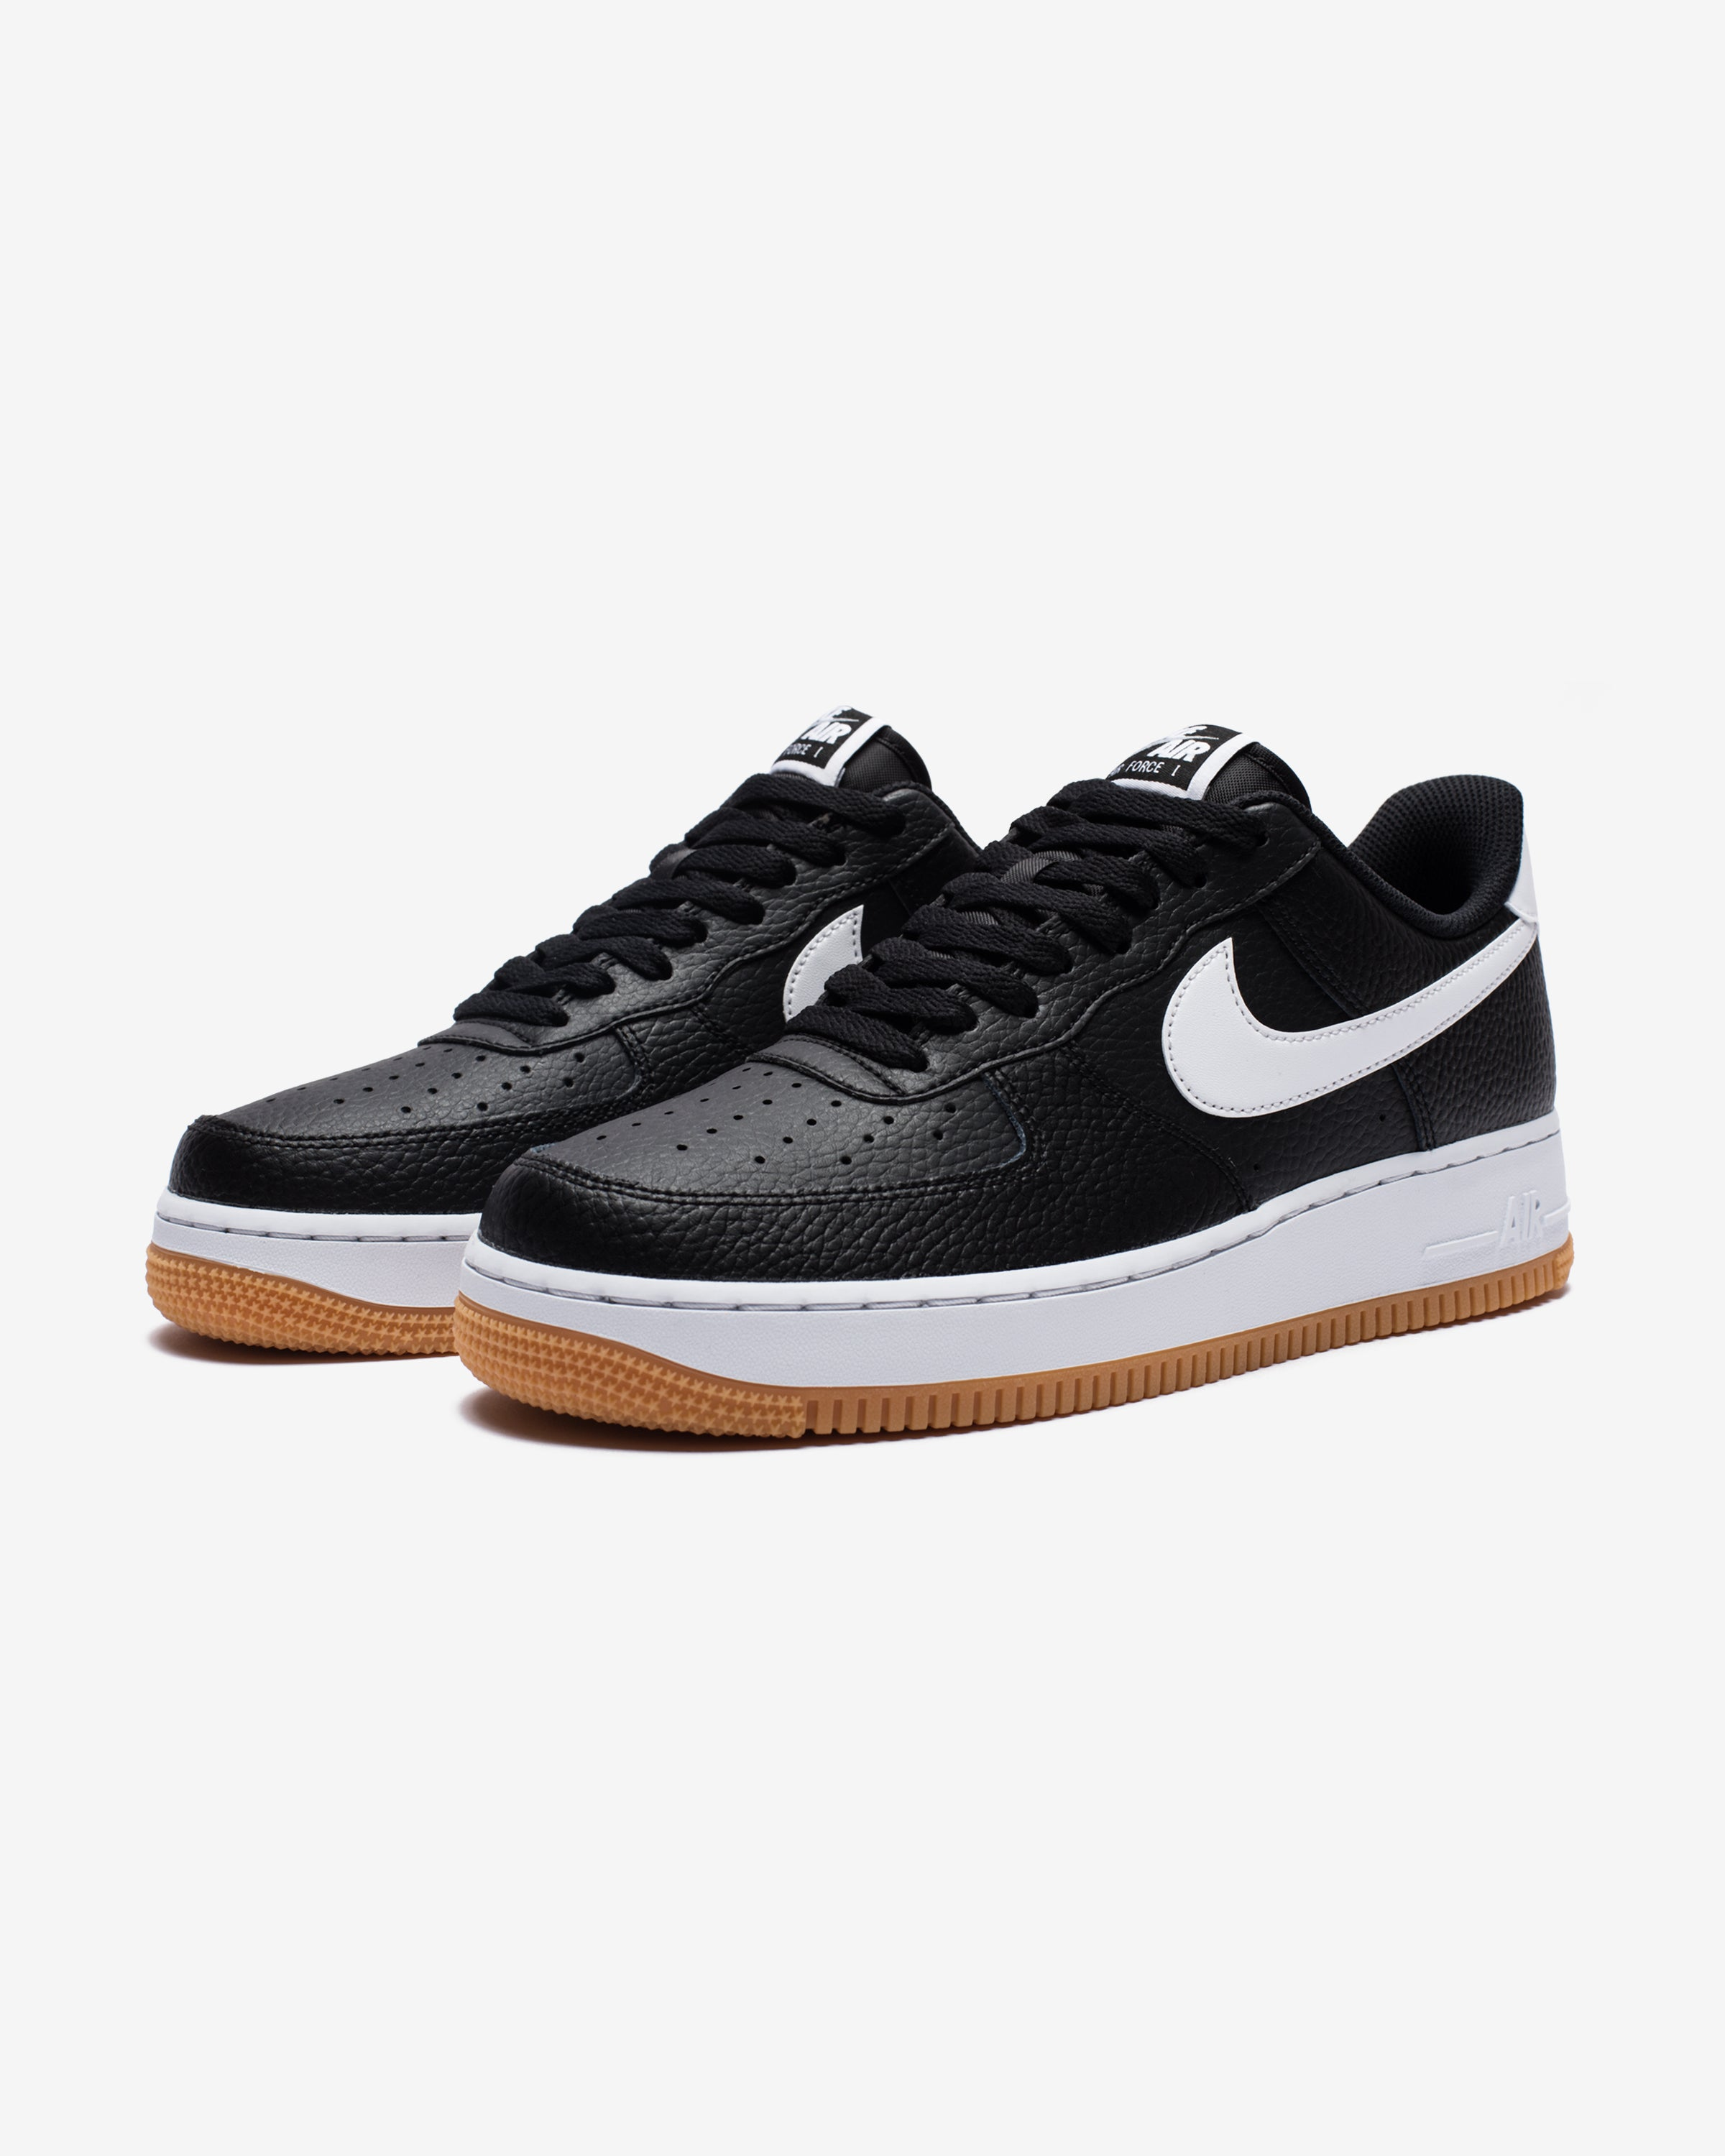 AIR FORCE 1 - BLACK/WHITE/WOLFGREY/GUMMEDBROWN